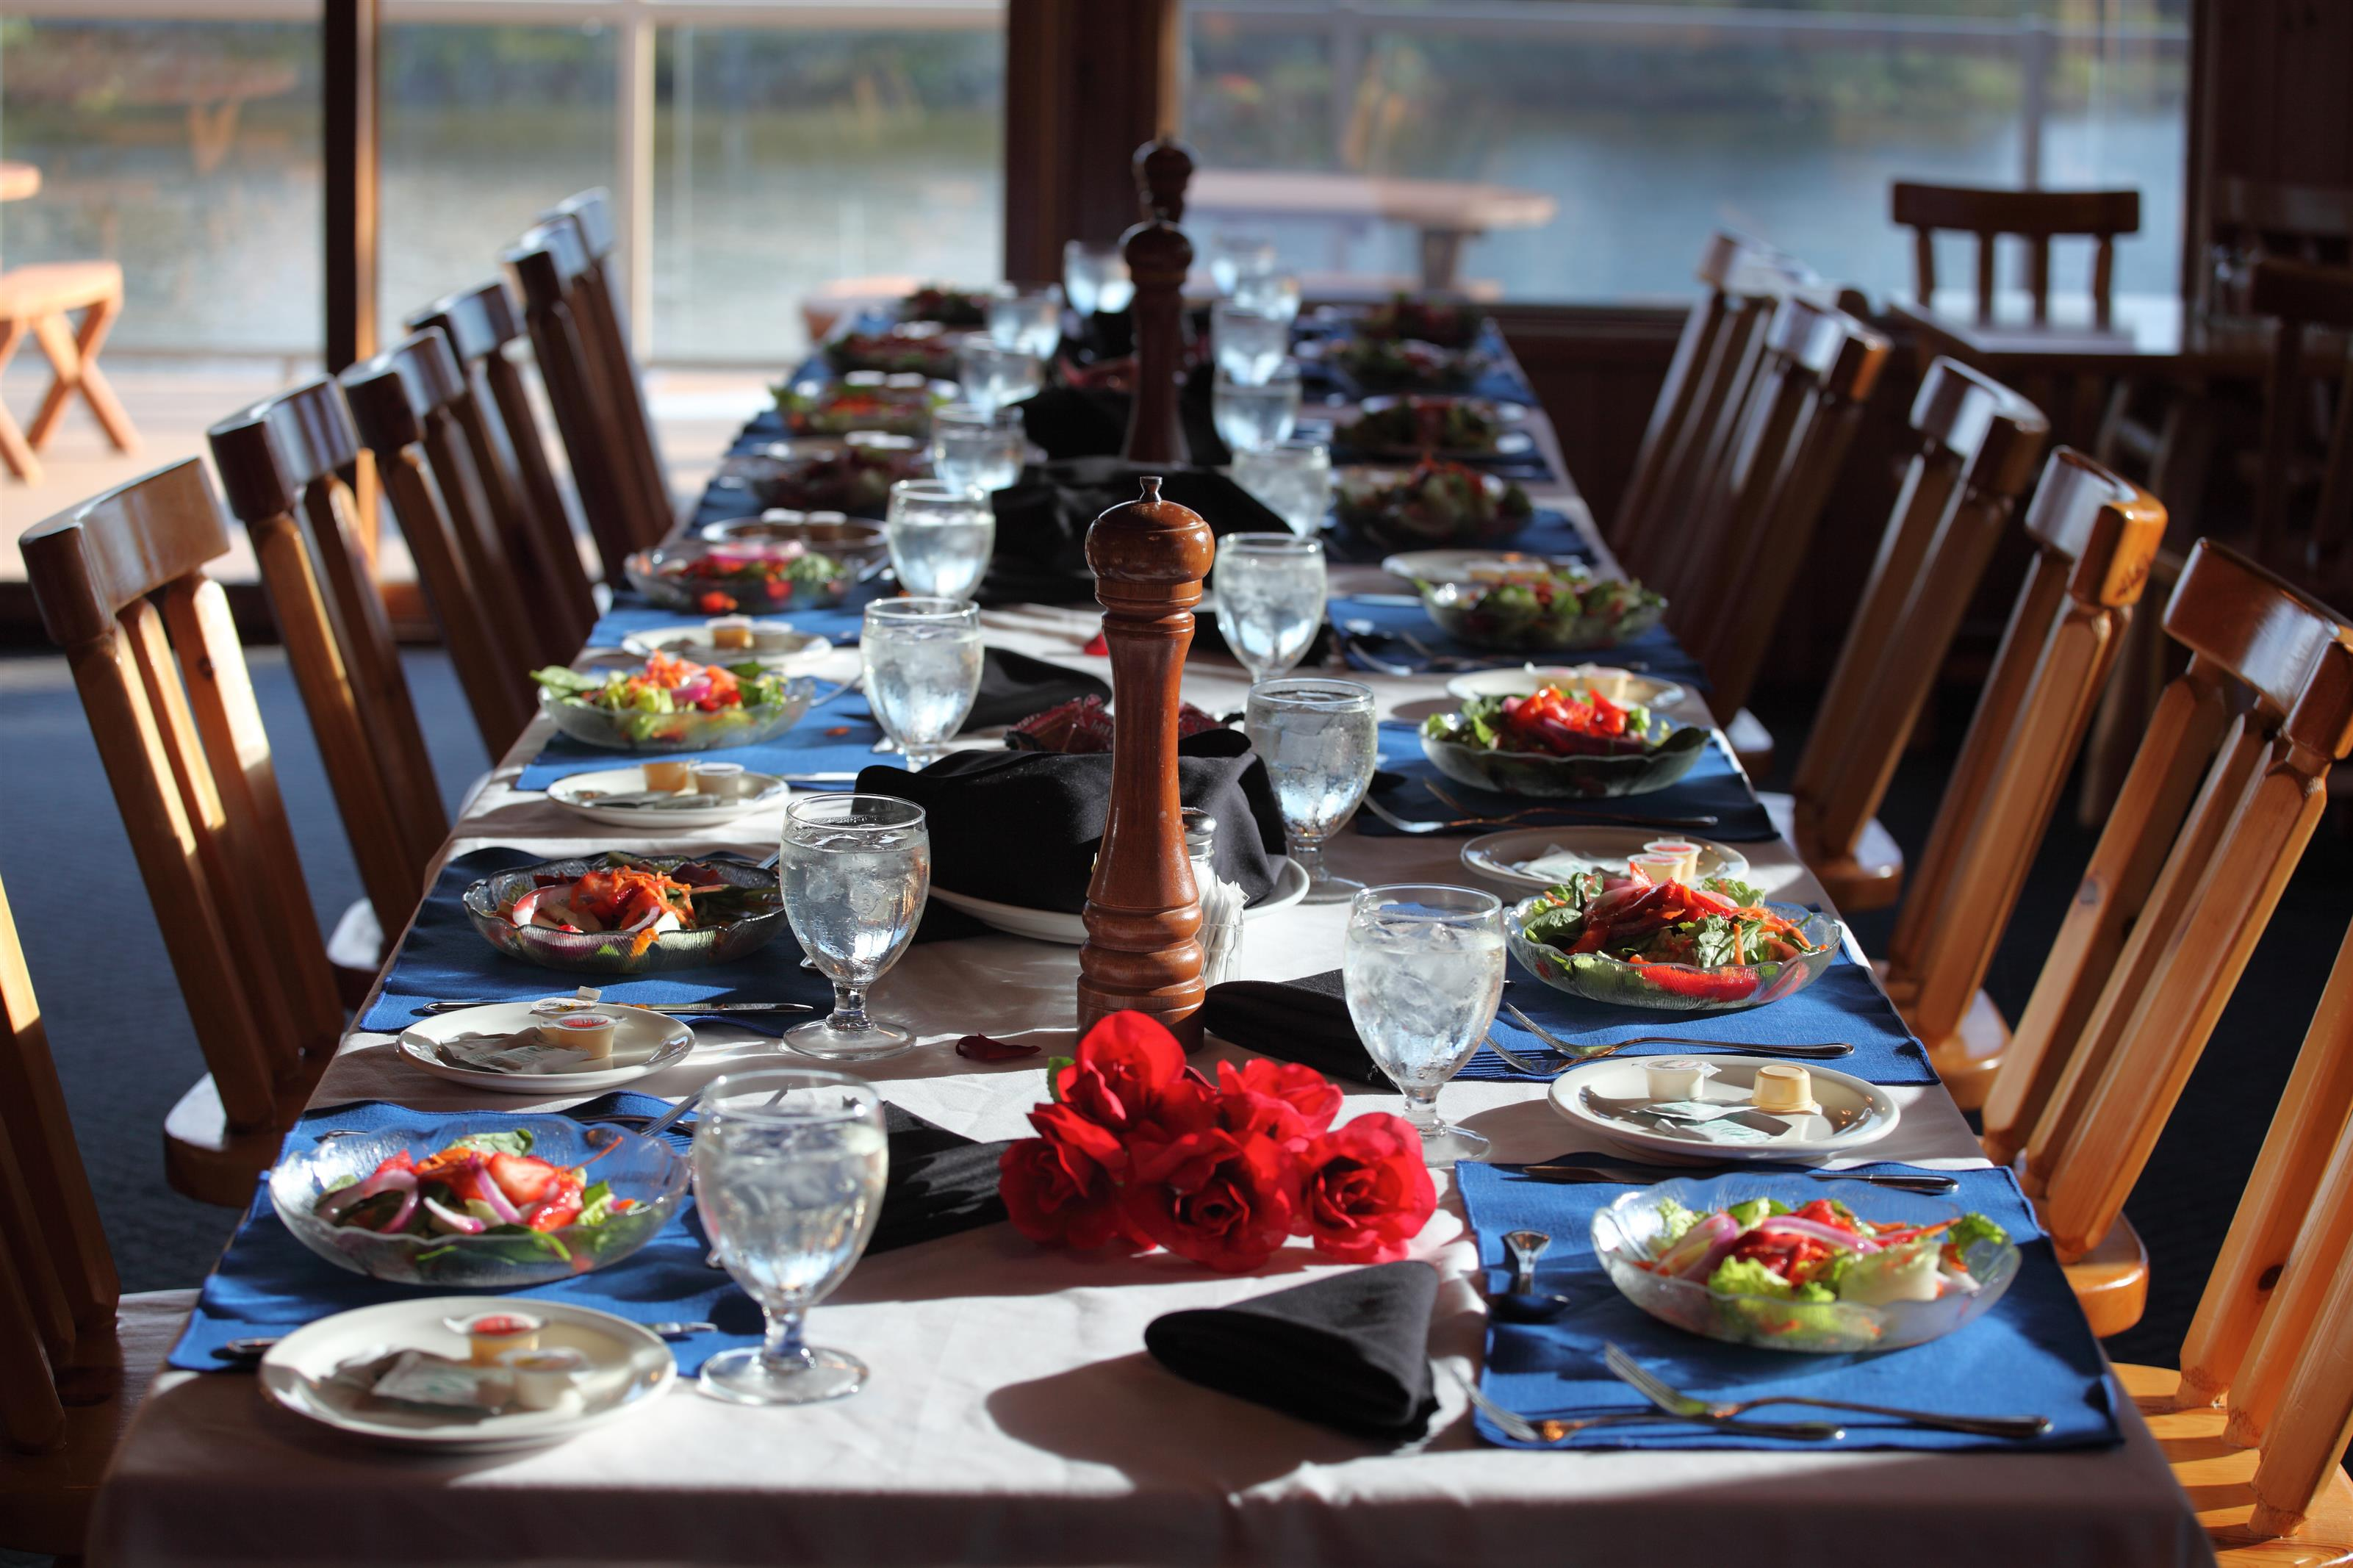 long table in the dining area of the lodge set up for a special event